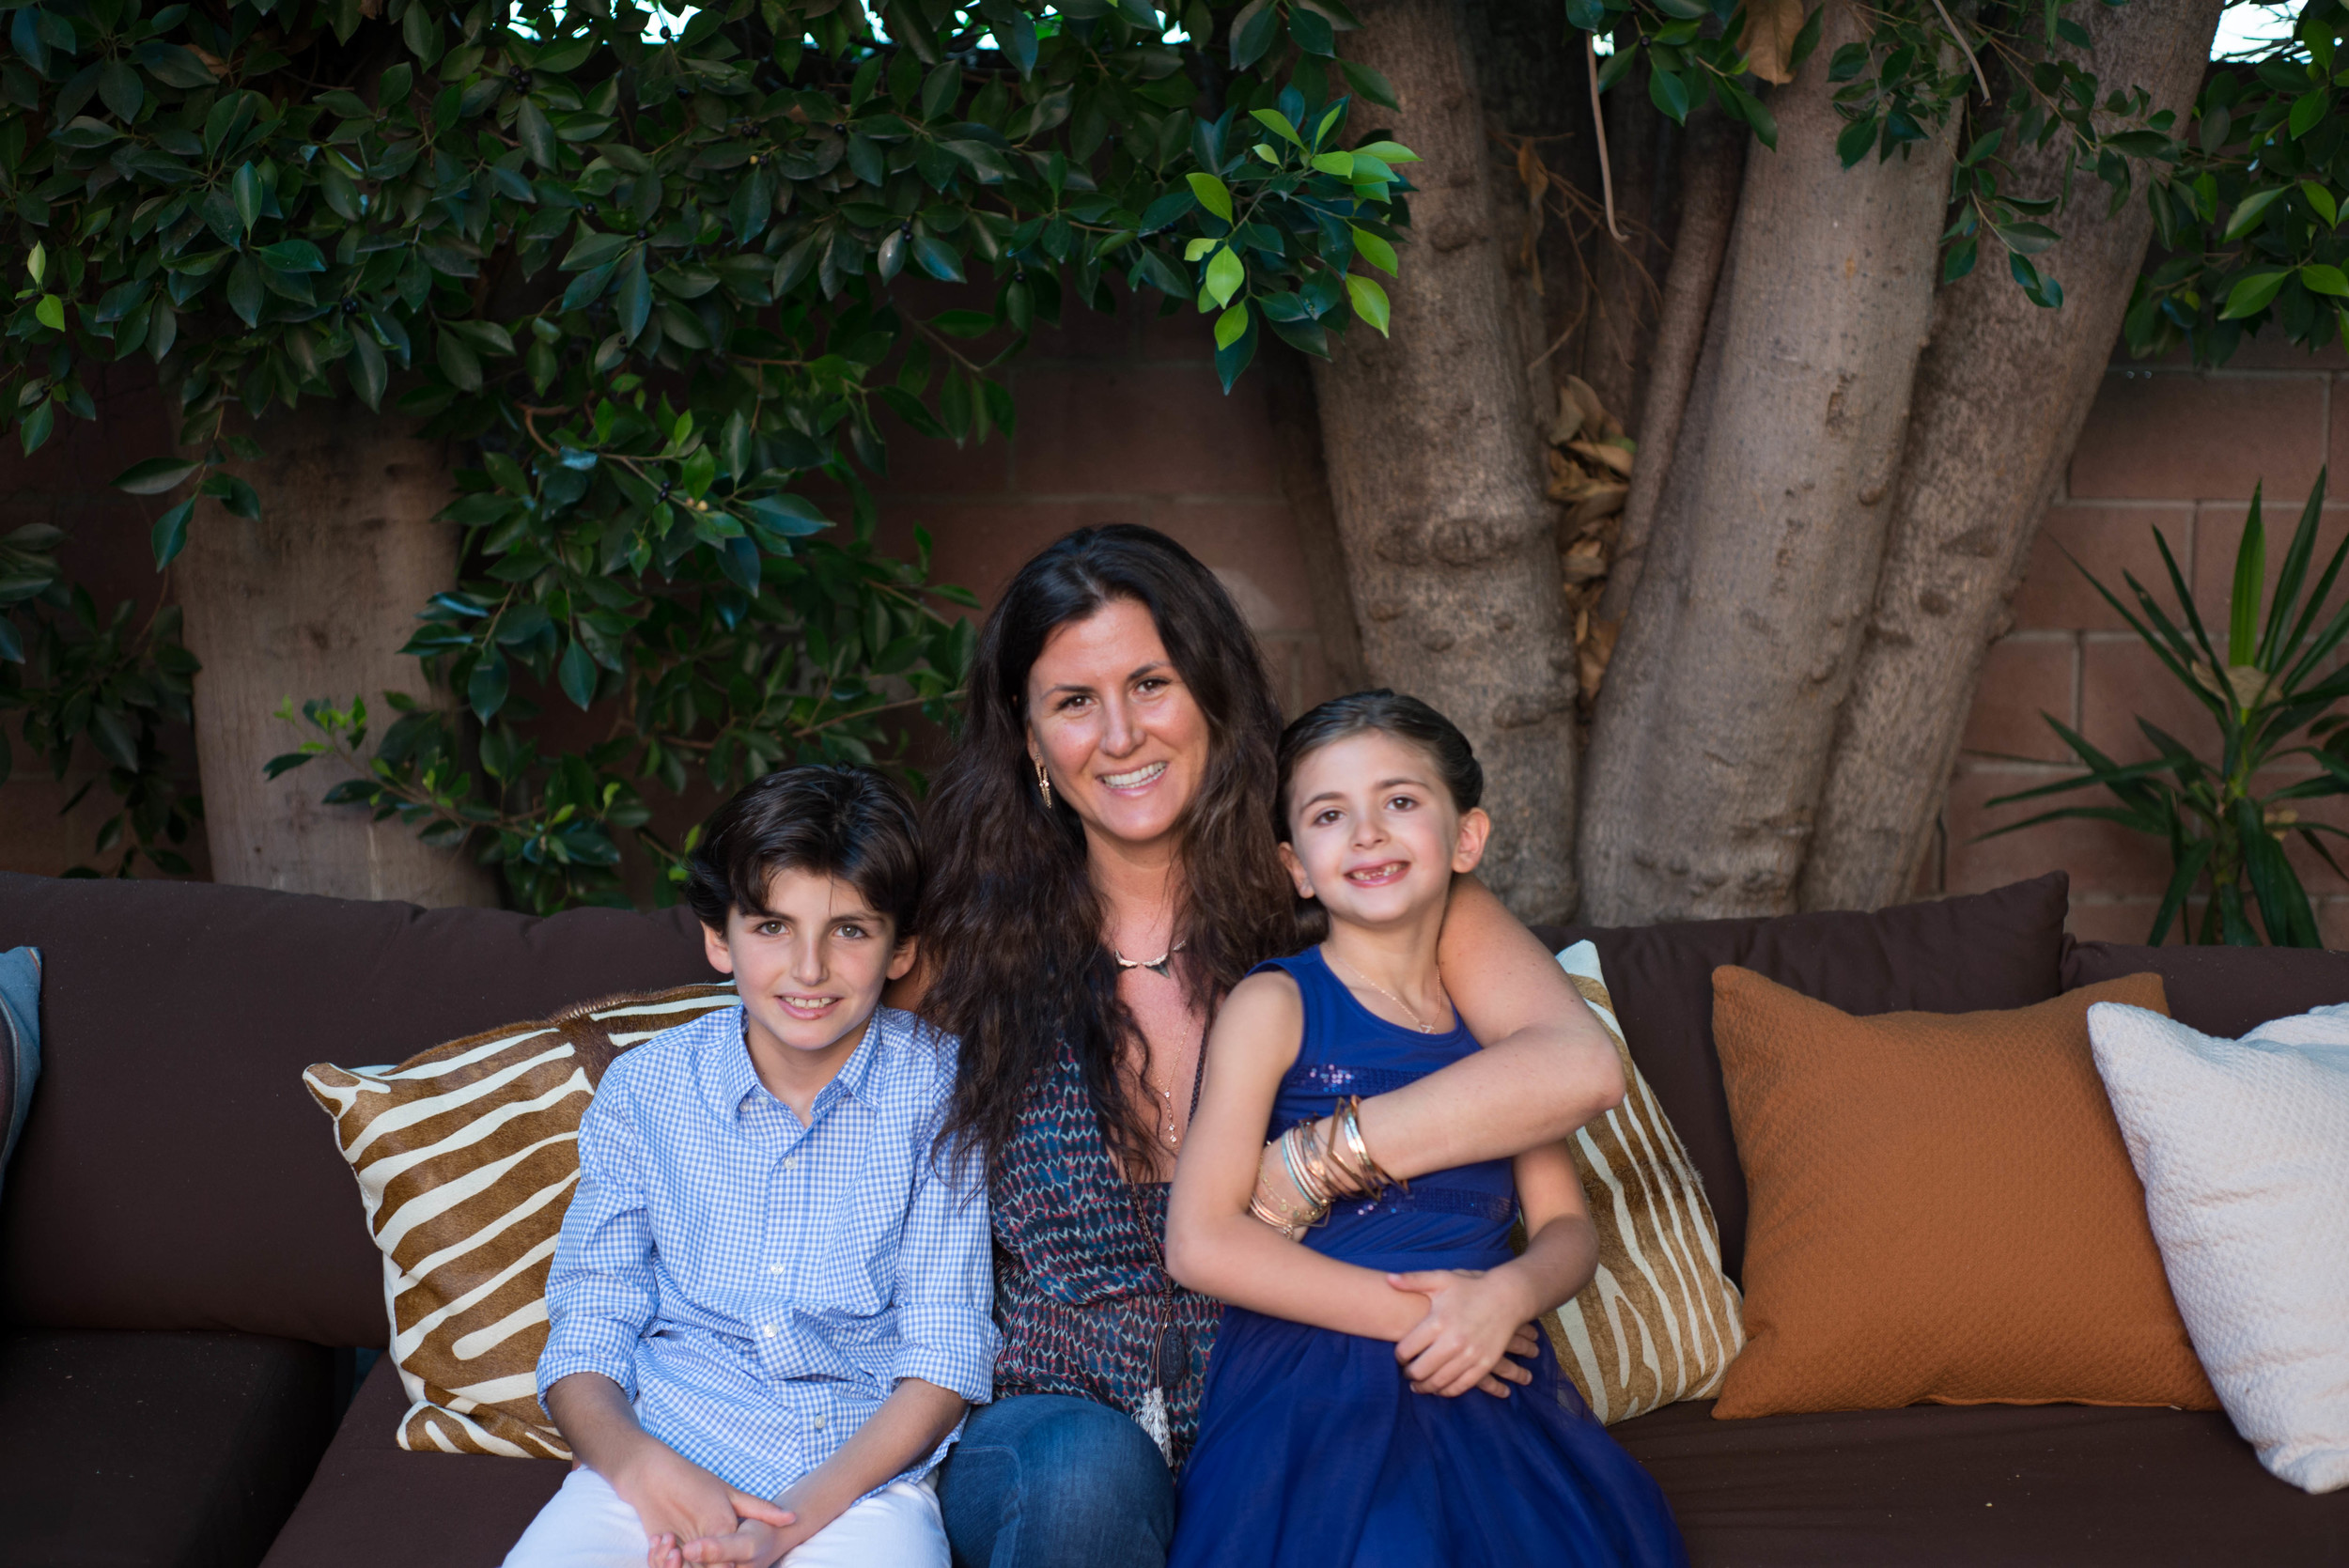 With her children,Luca and Zoe.